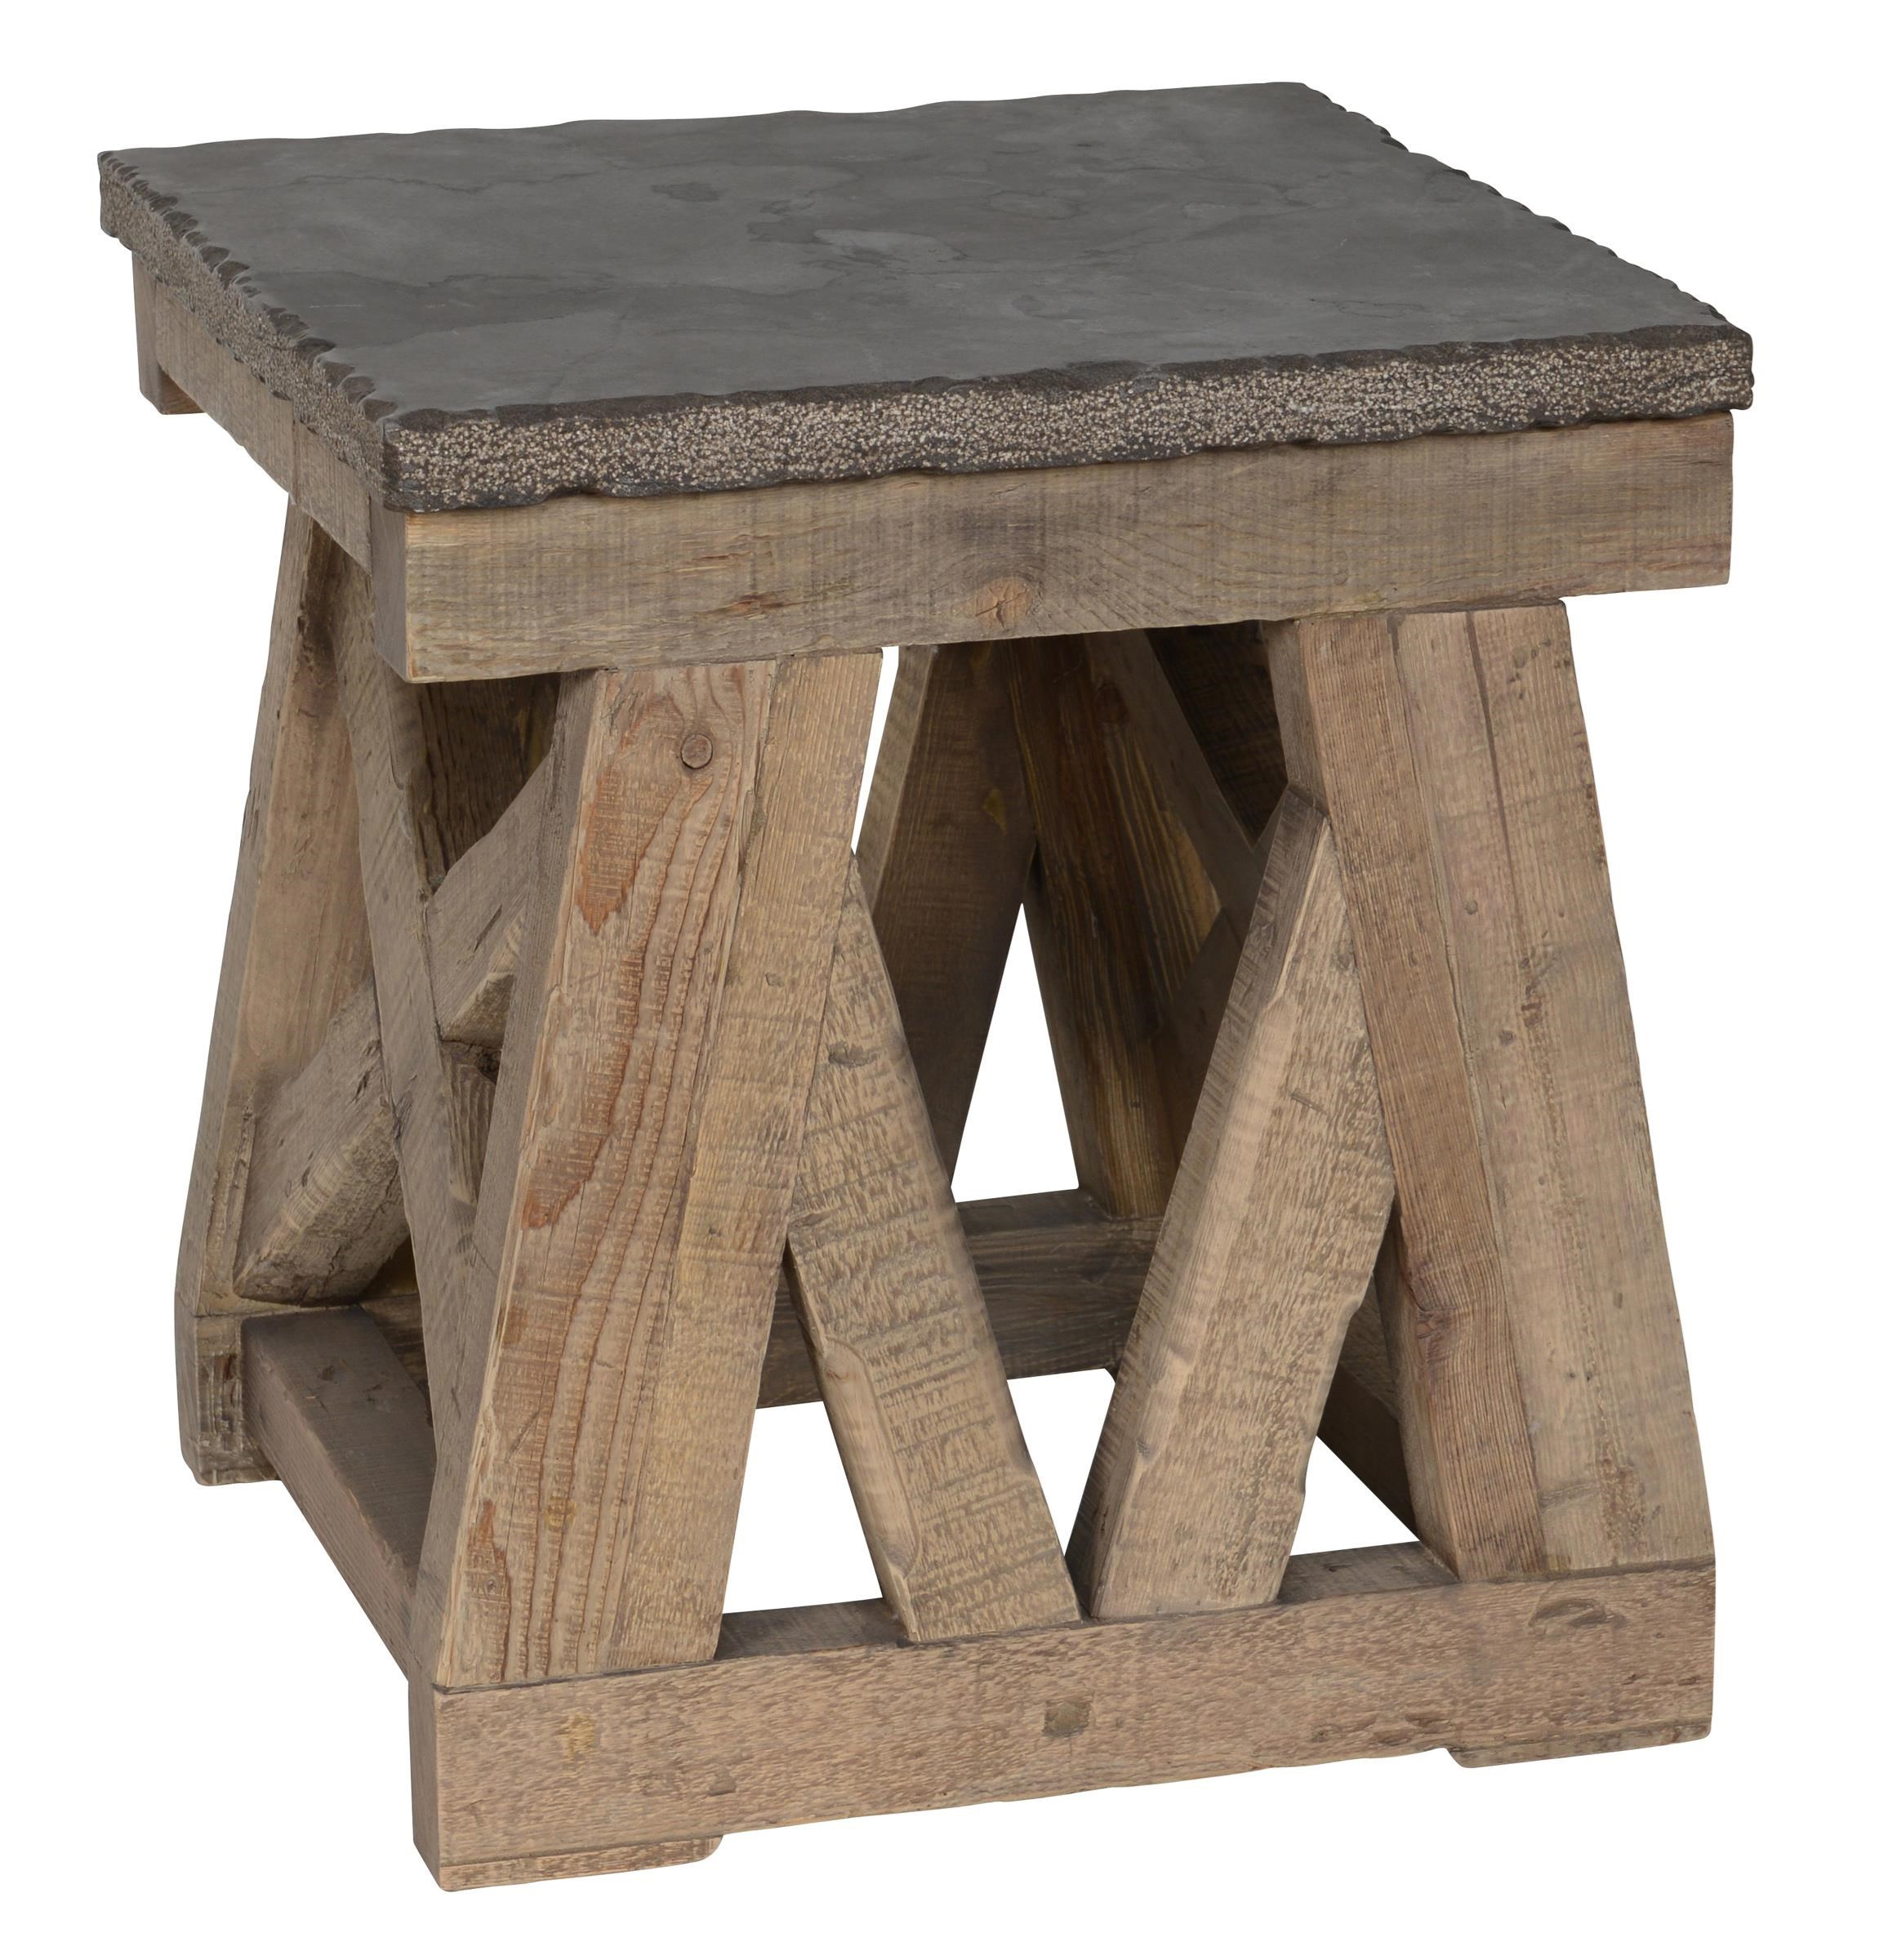 Classic Home/Villa Home Collection Marbella Stone Top End Table - Item Number: GRP-MARBELLA-ENDTBL